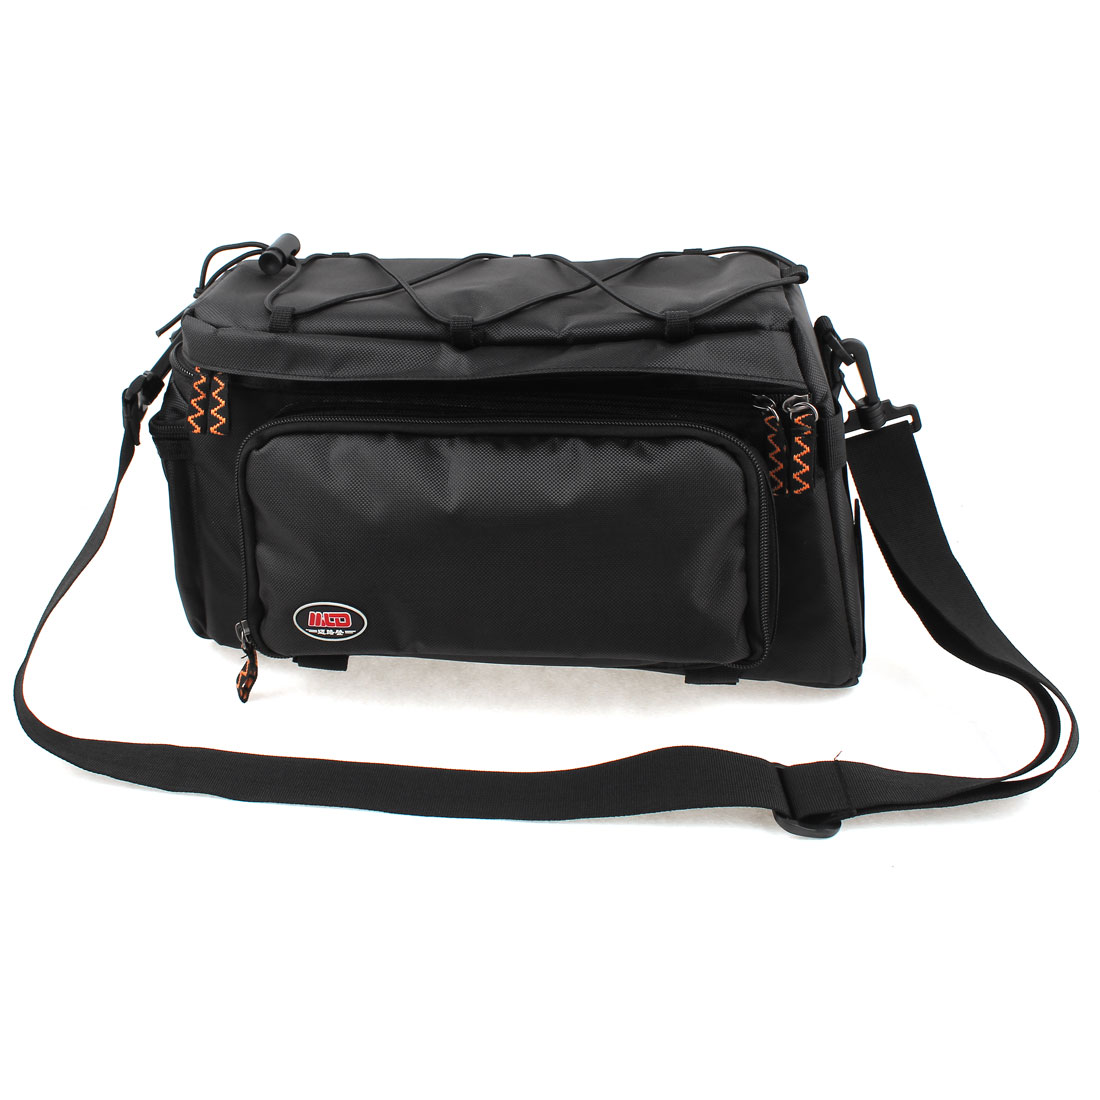 Cycling Bike Bicycle Rear Seat Bag Shoulder Handbag Pannier Black